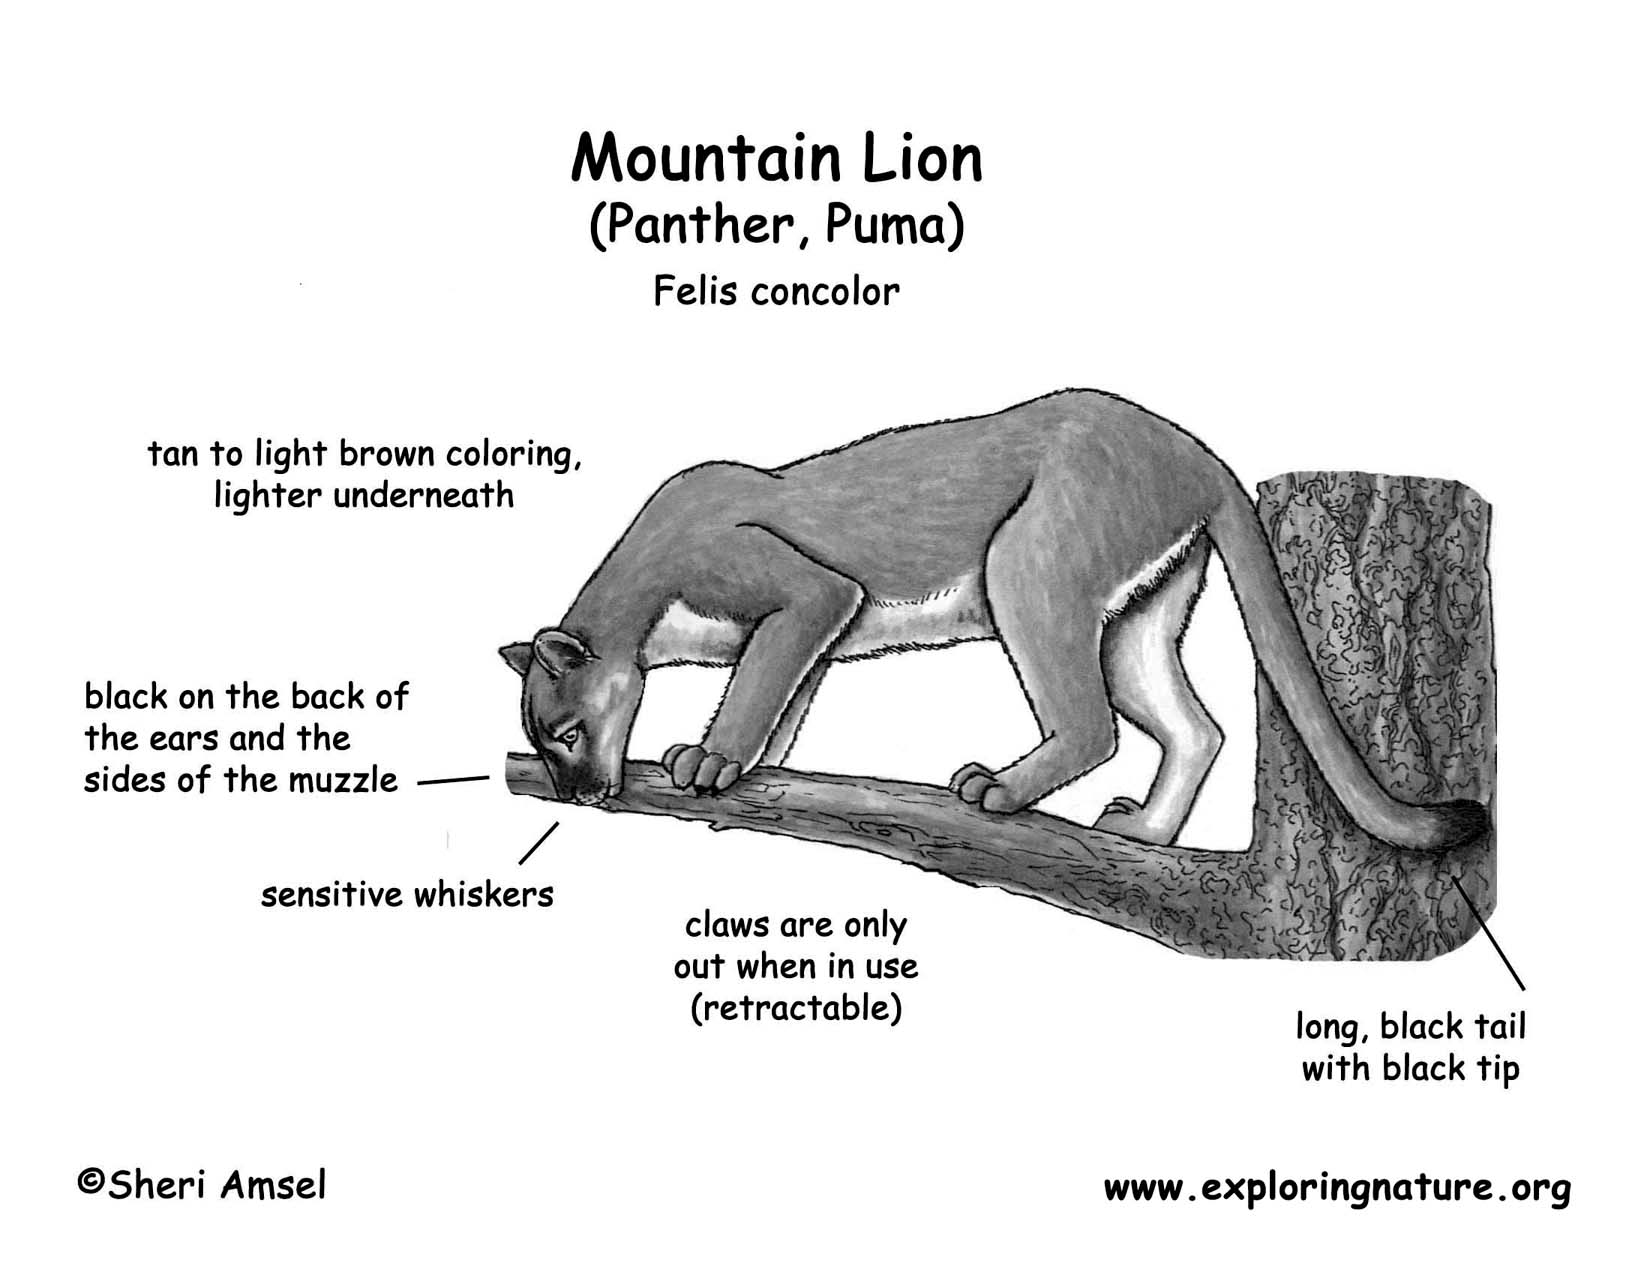 lion life cycle diagram viper 5901 remote start wiring mountain panther puma cougar catamount